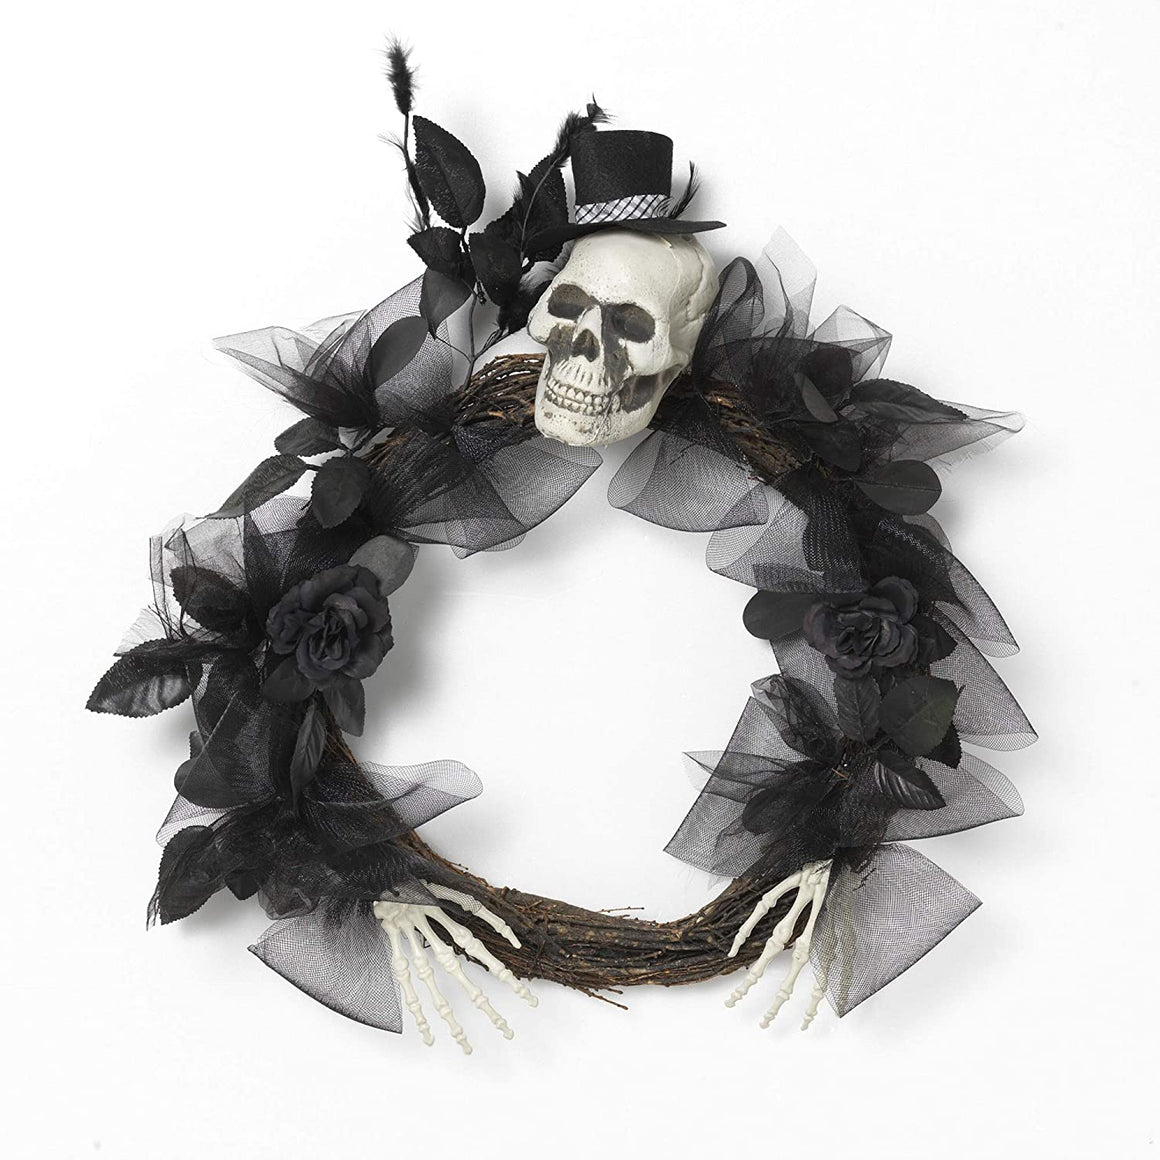 2544730 Halloween Wreath with Skull, 22-inch Diameter